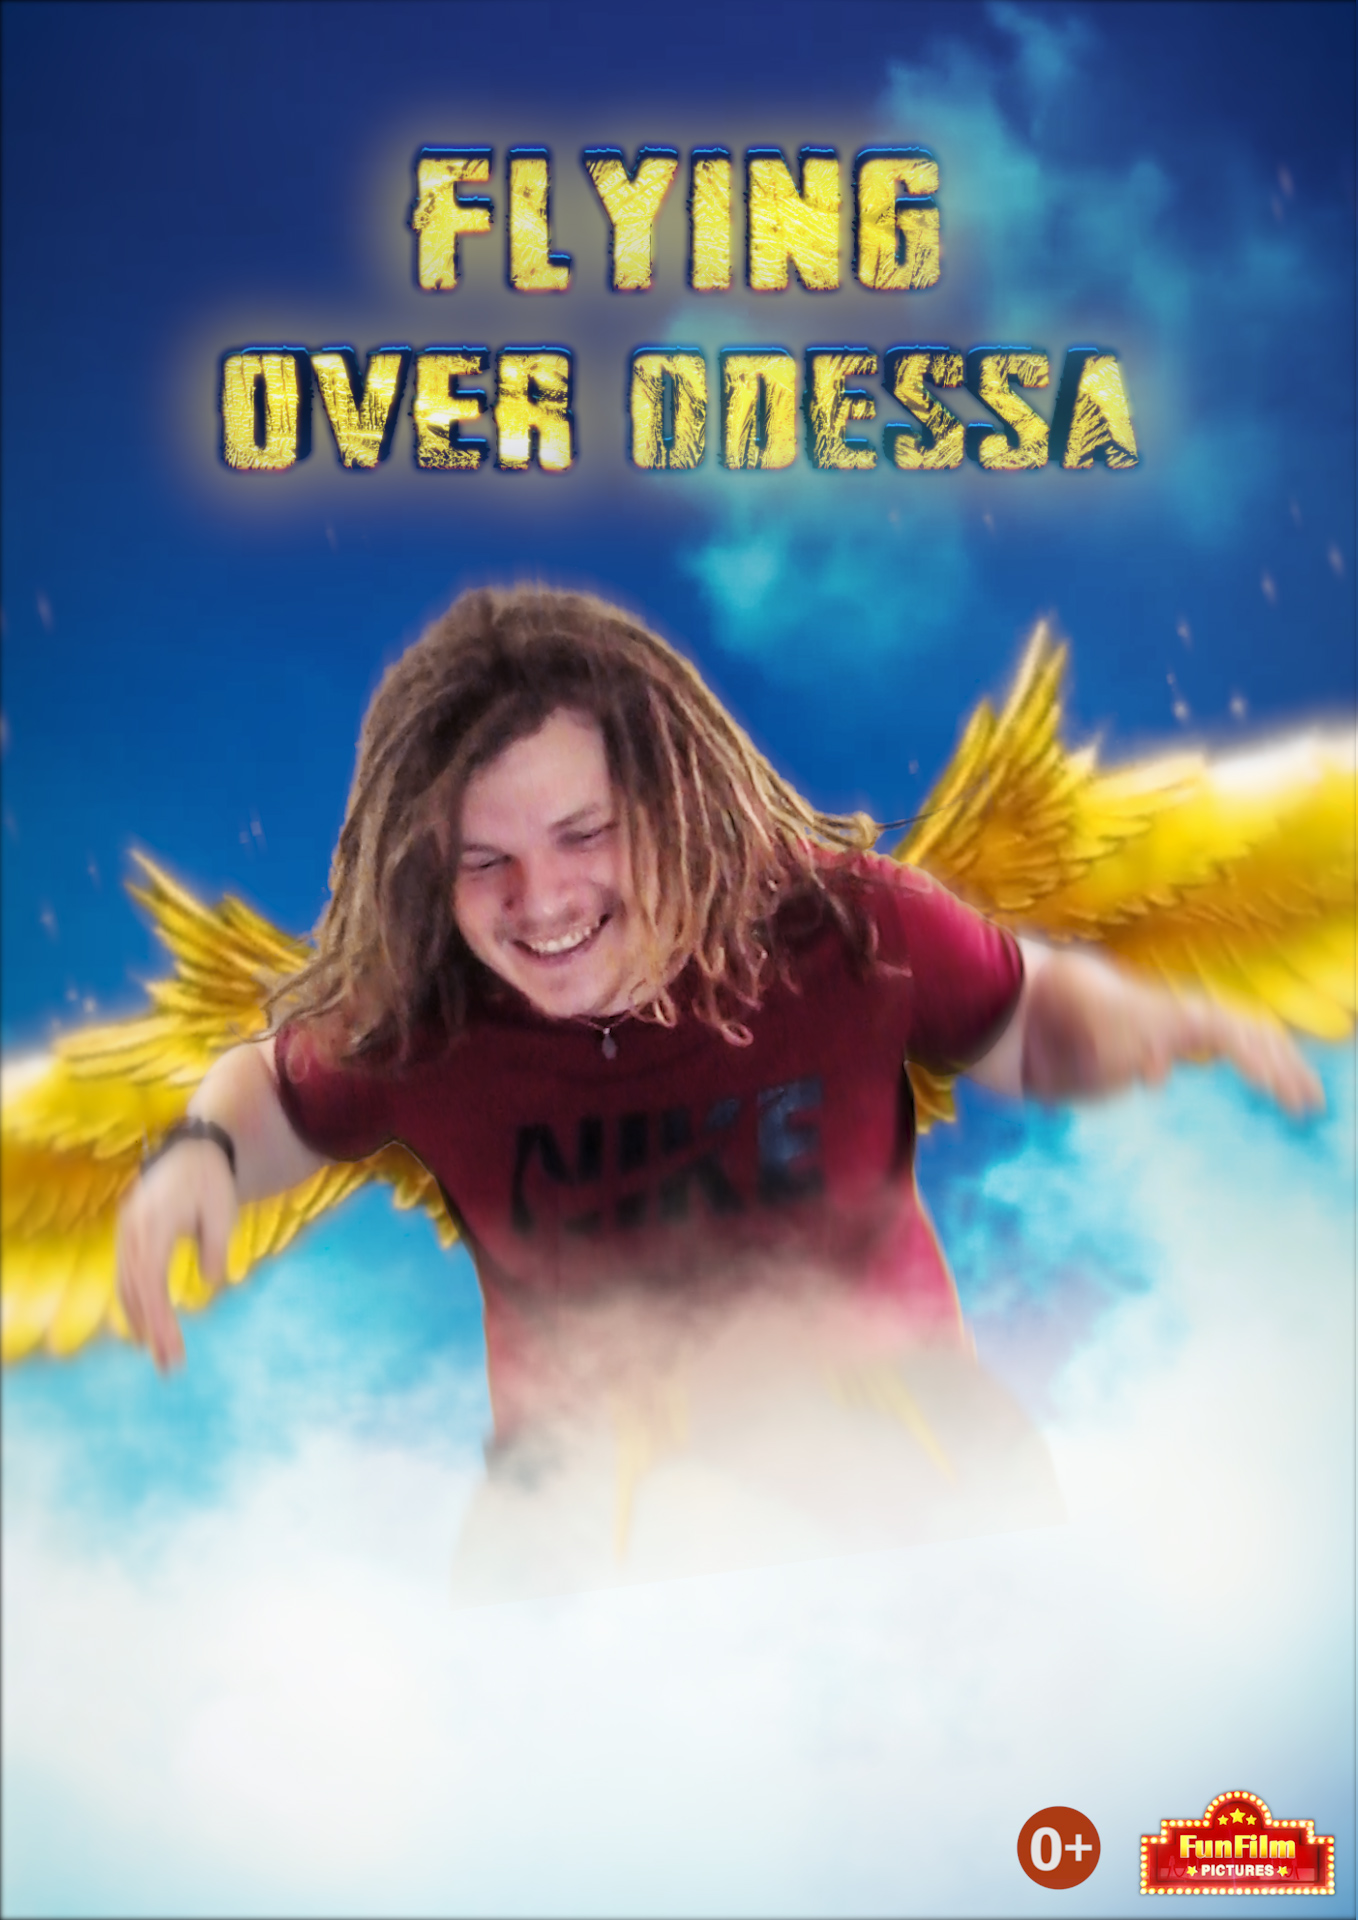 FLYING OVER ODESSA POSTER EN 2 - Flying over Odessa